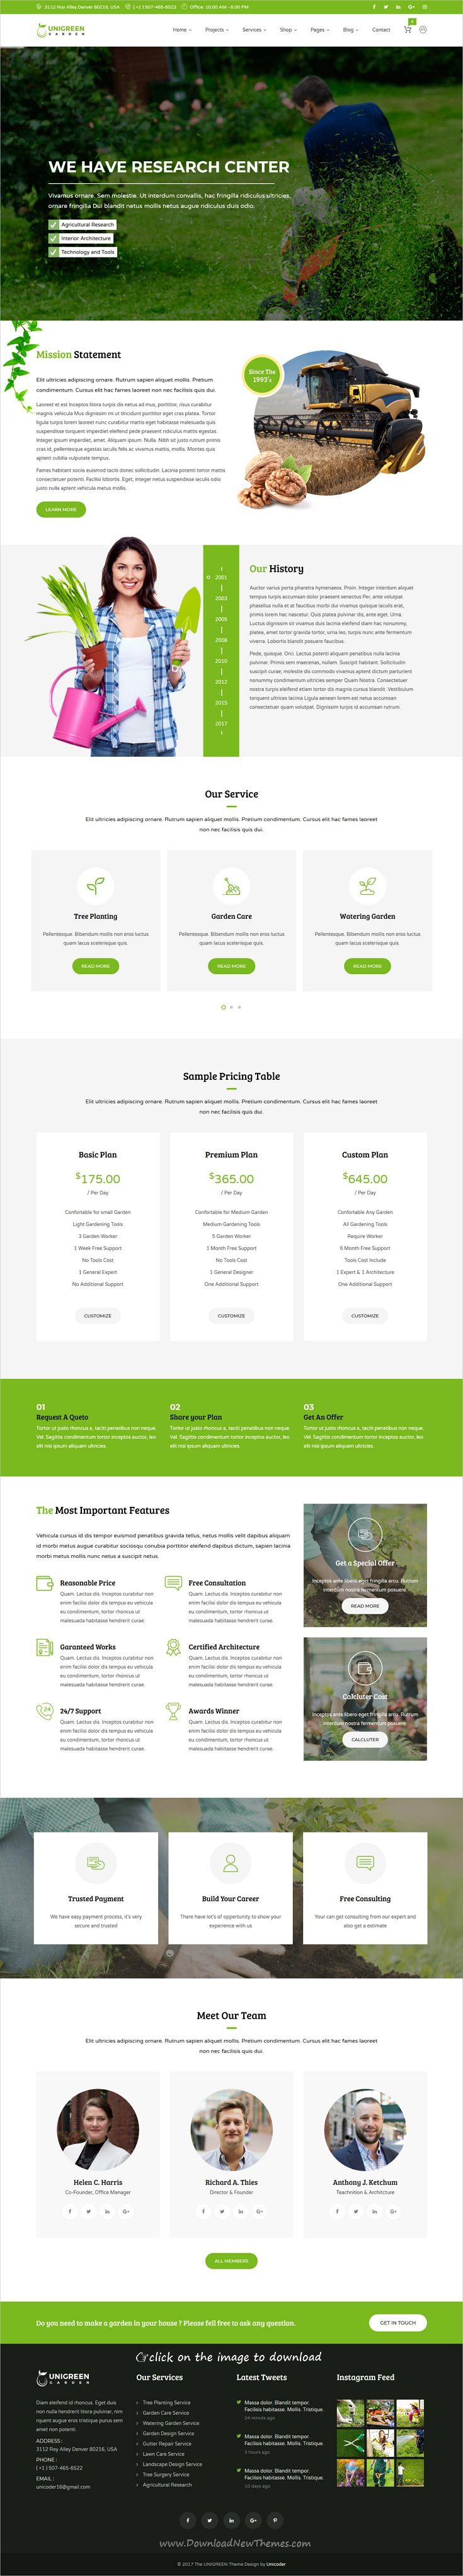 Unigreen is clean and modern design 3in1 responsive #HTML5 template for #gardener, #landscaping and lawn services website to download click on image.